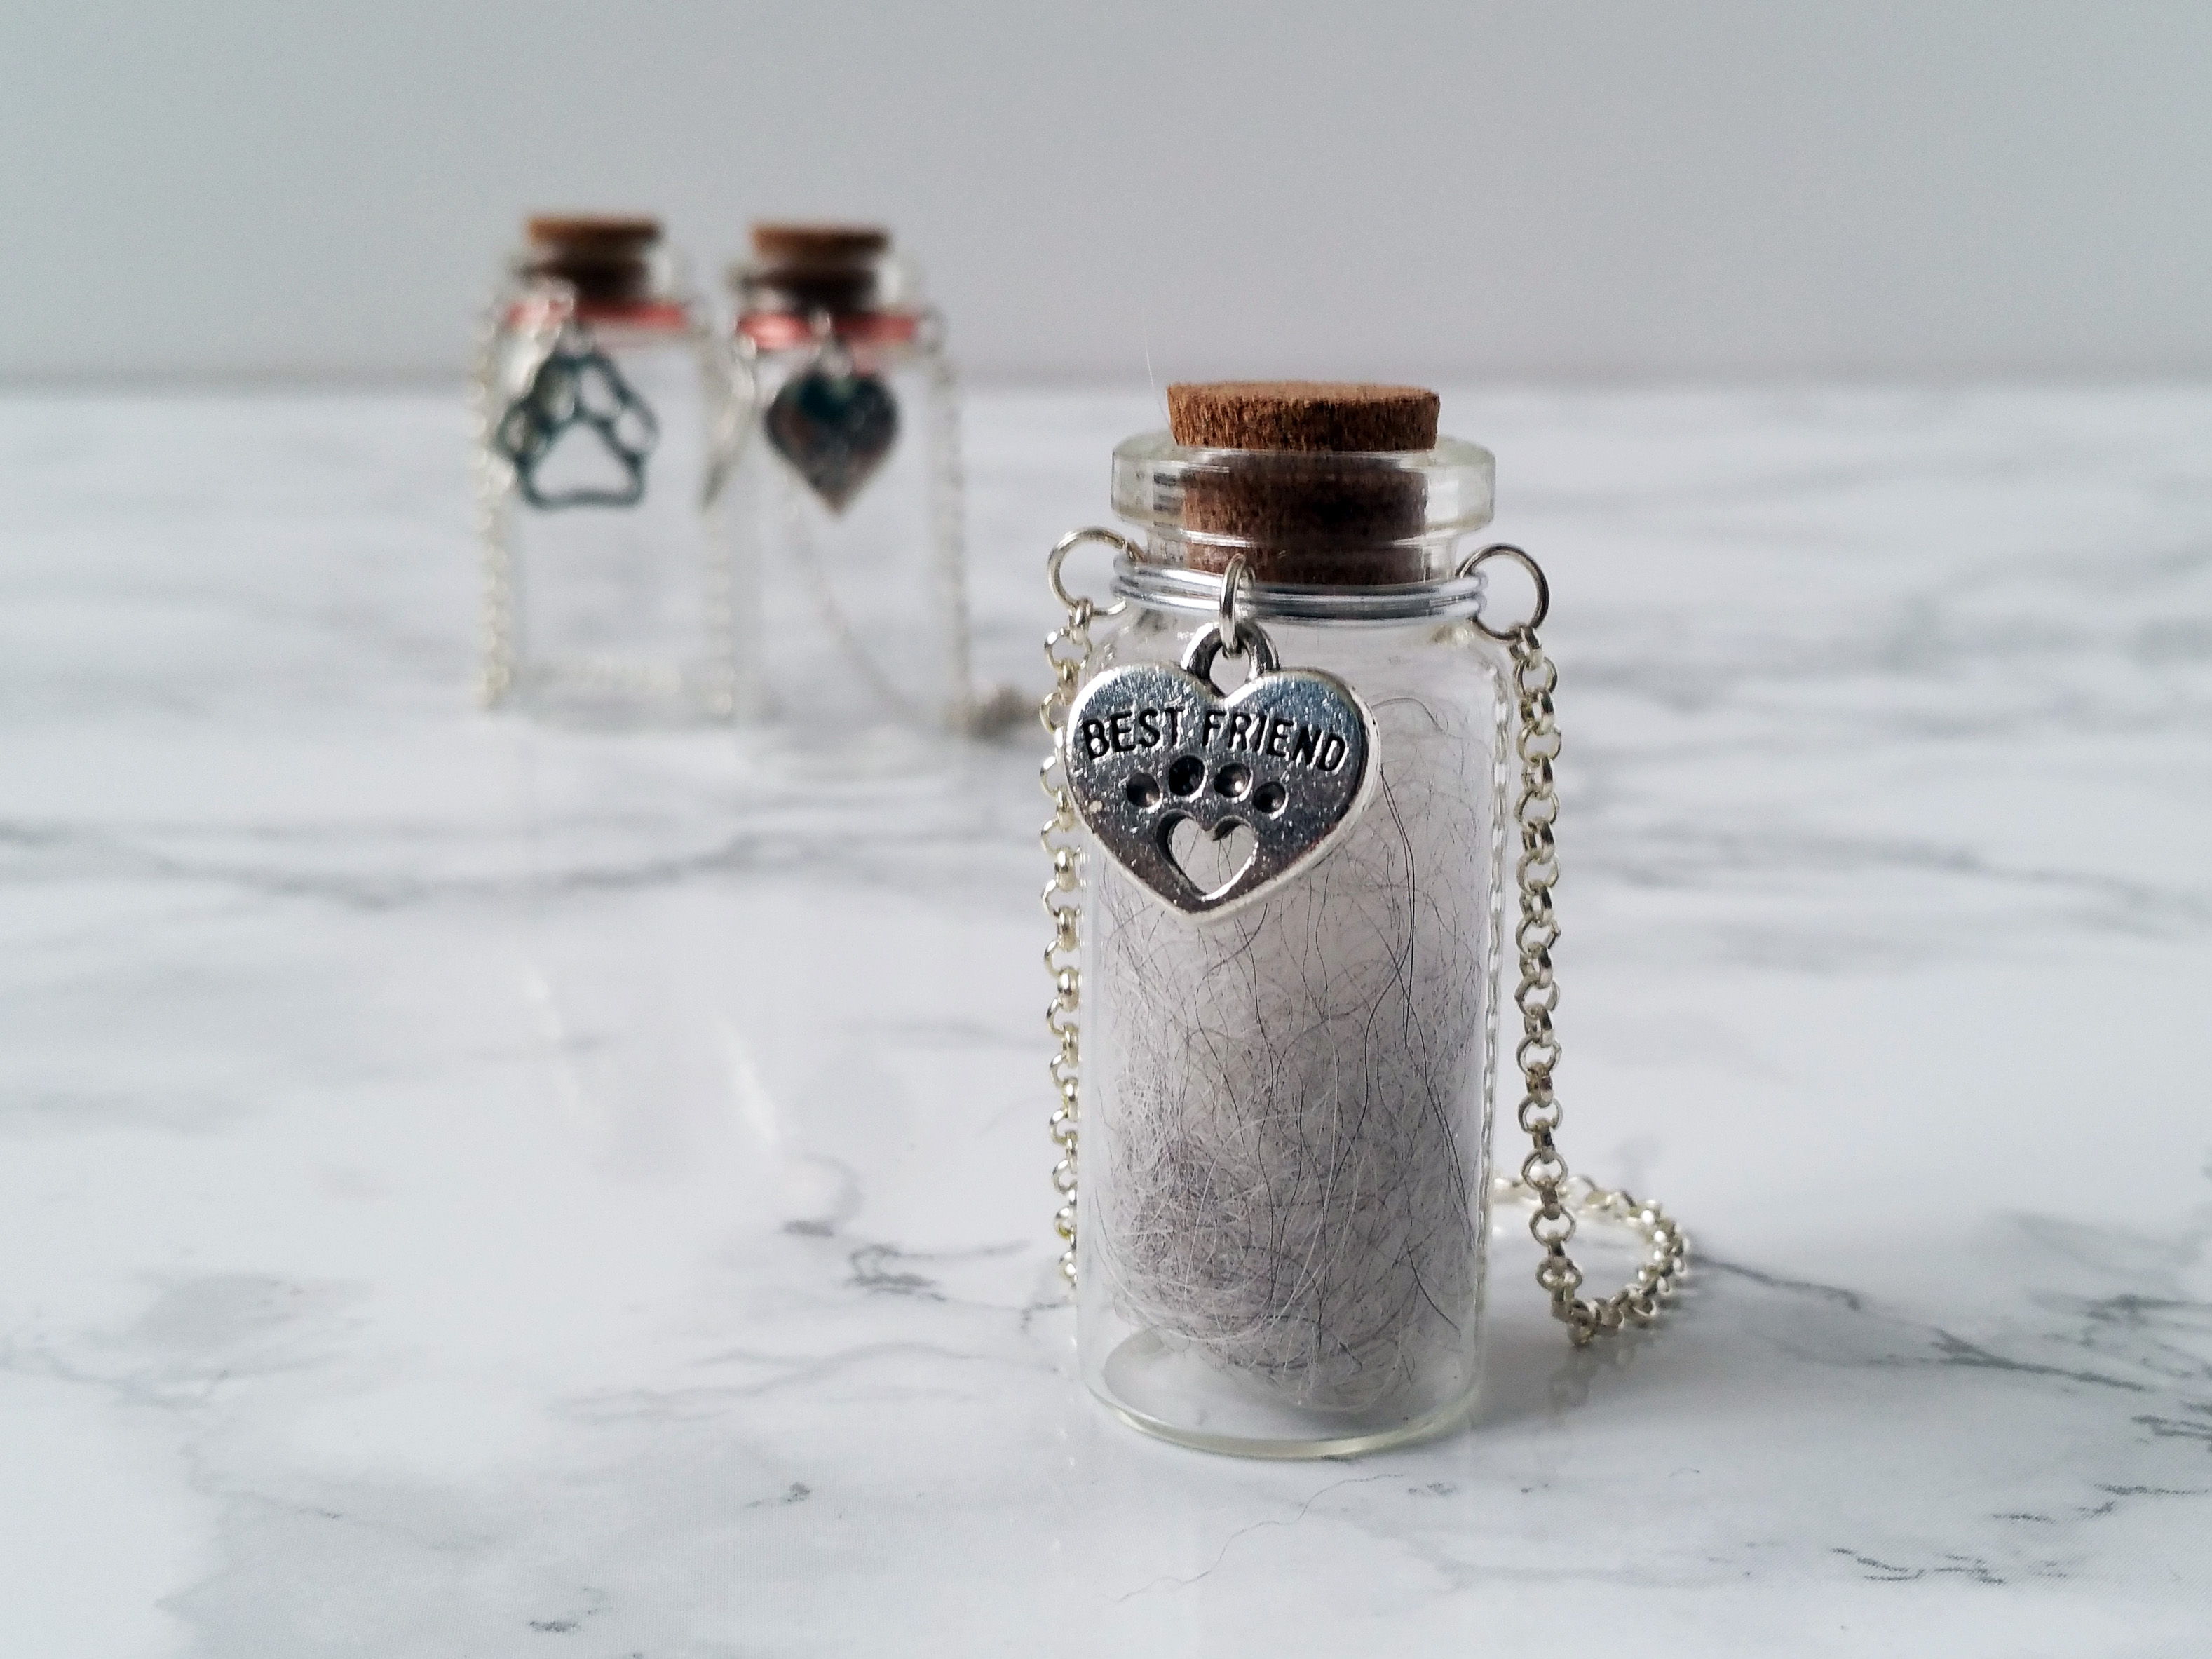 Pet Memorial Urn | Glass Vial for Ashes or Hair | Pet Loss Gift